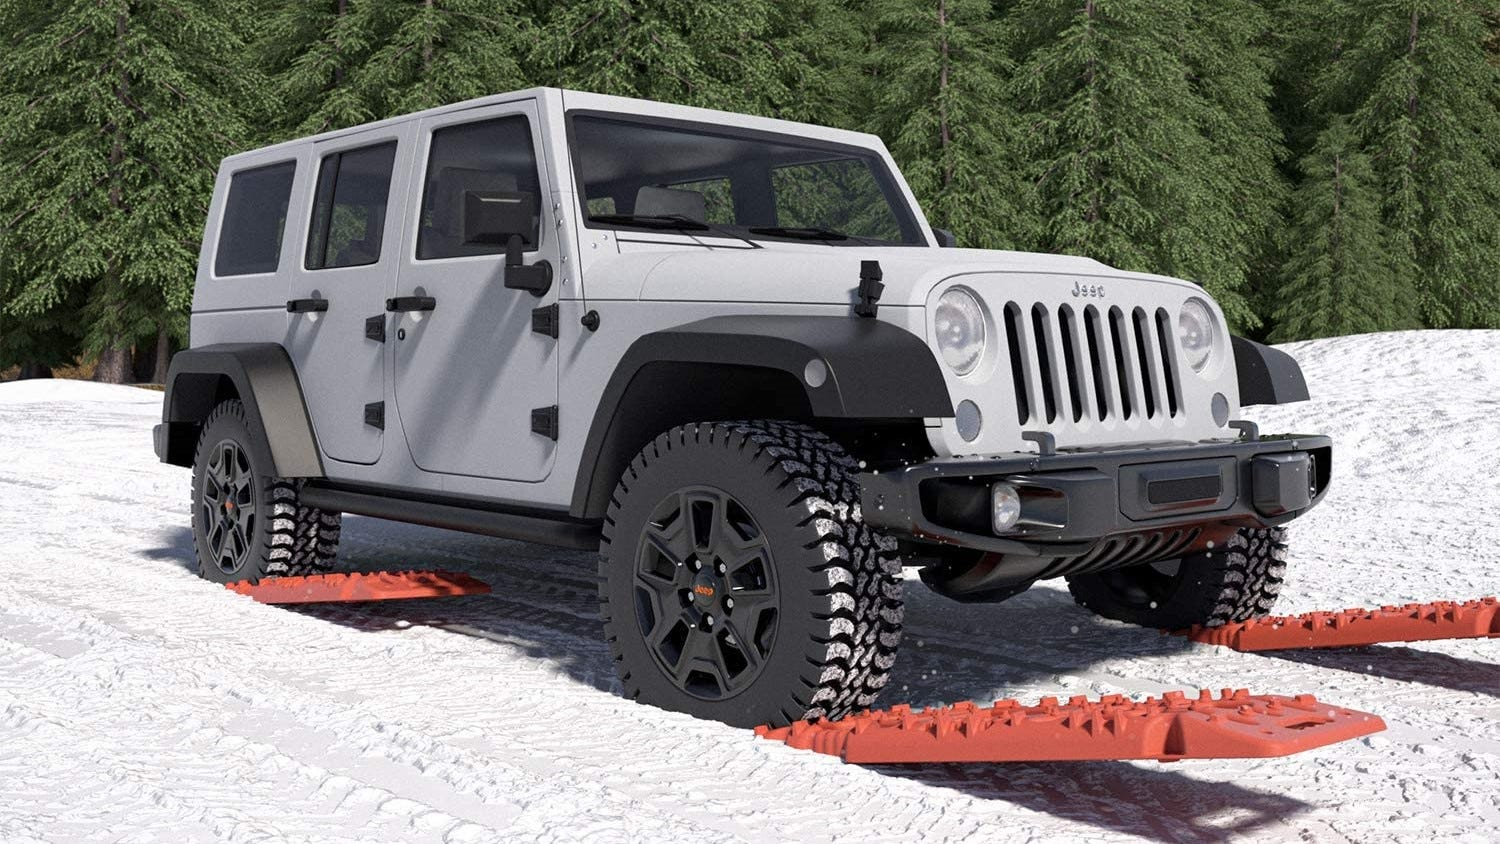 Vehicle using traction mats to get through snow.